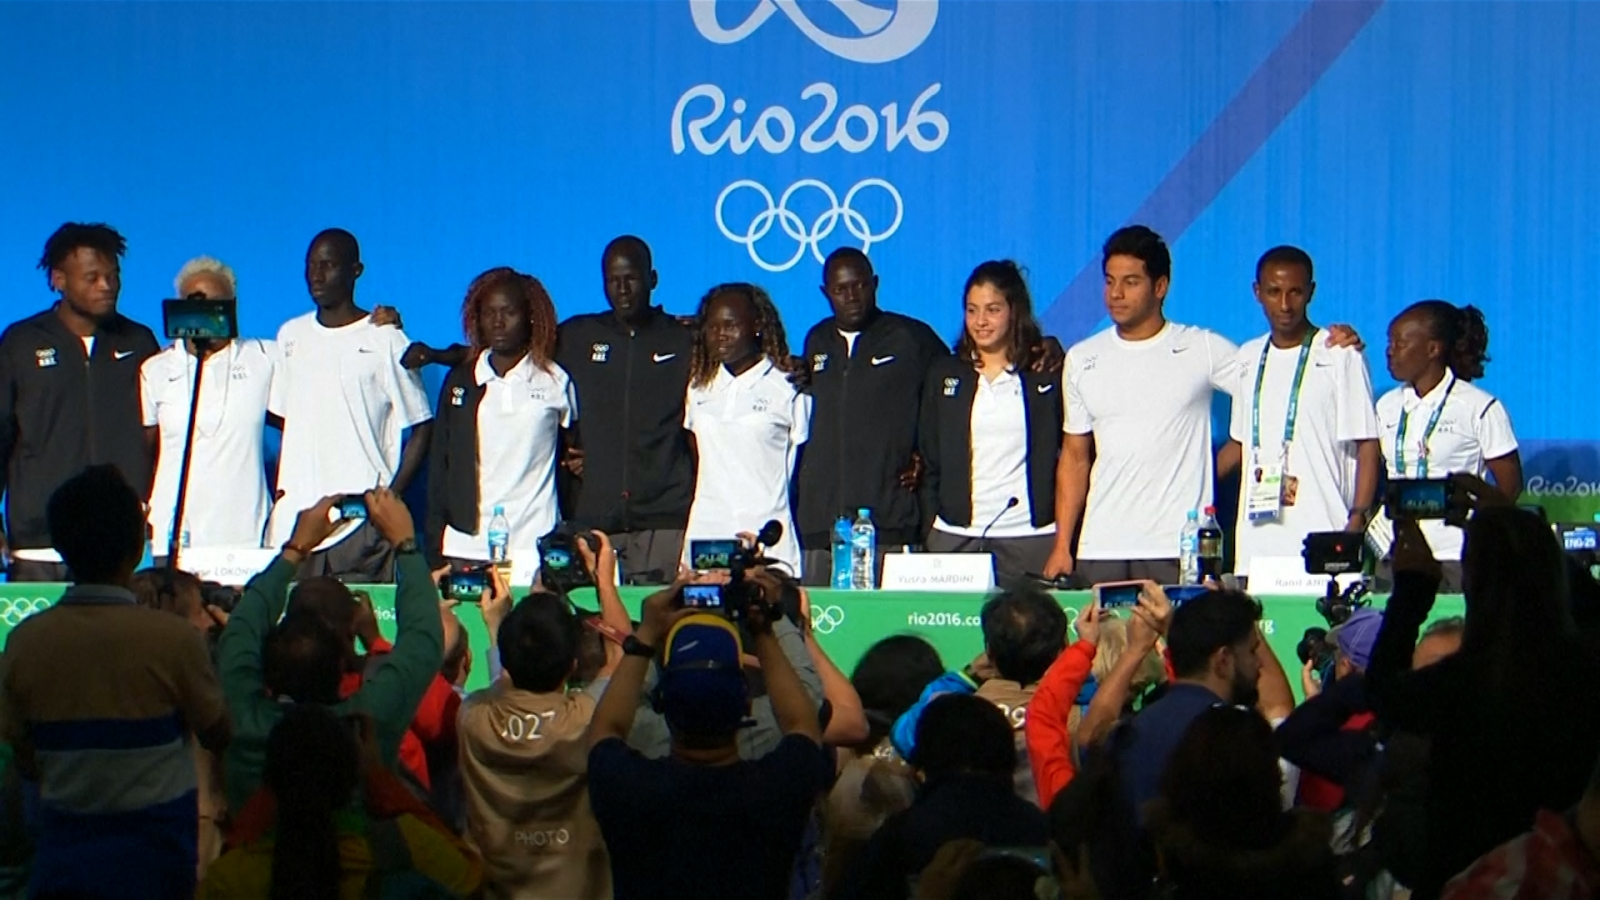 Olympic refugee team are proud